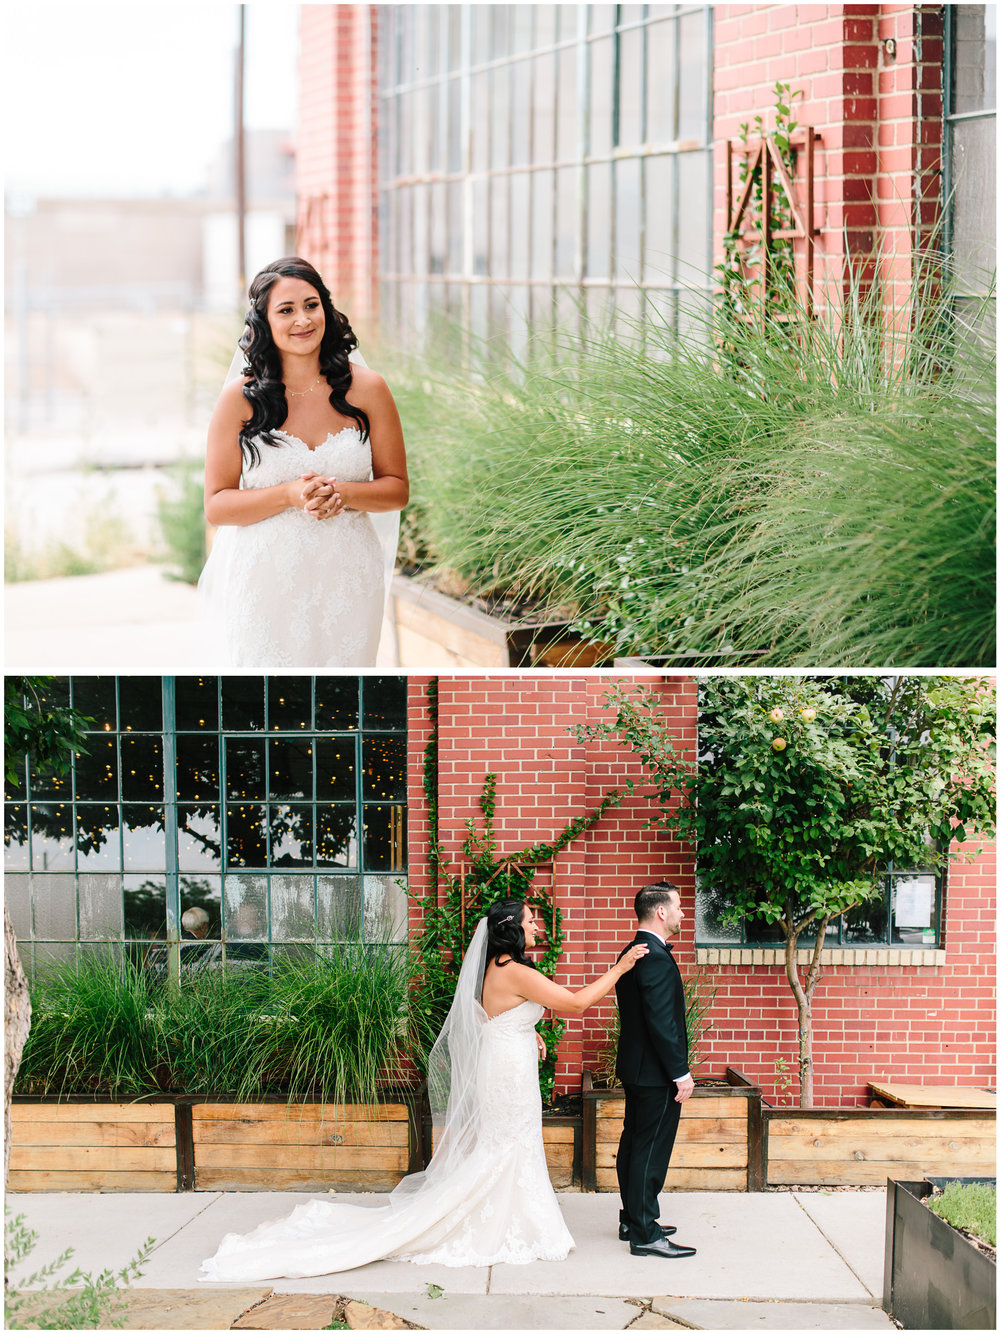 moss_denver_wedding_17.jpg